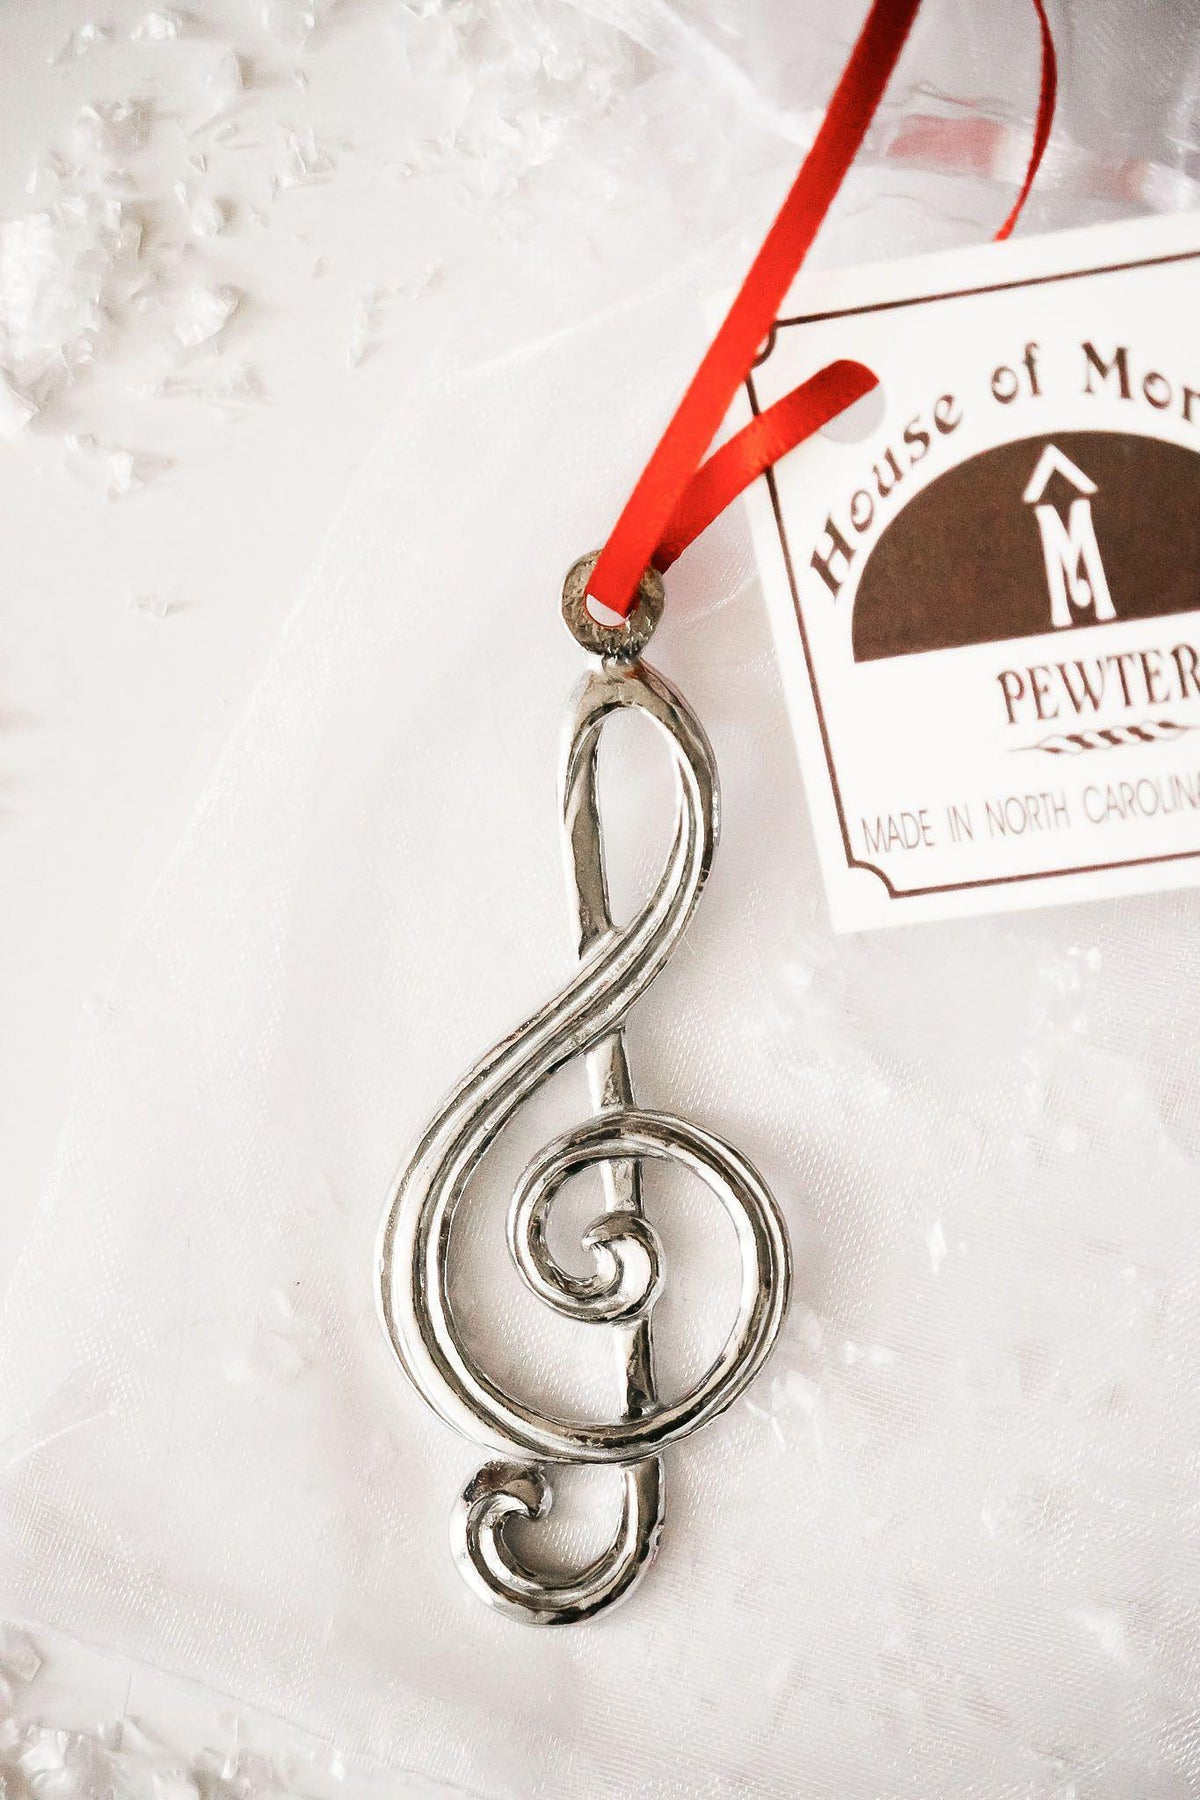 Handmade Pewter Music Instrument Music Note Christmas Ornament Gift